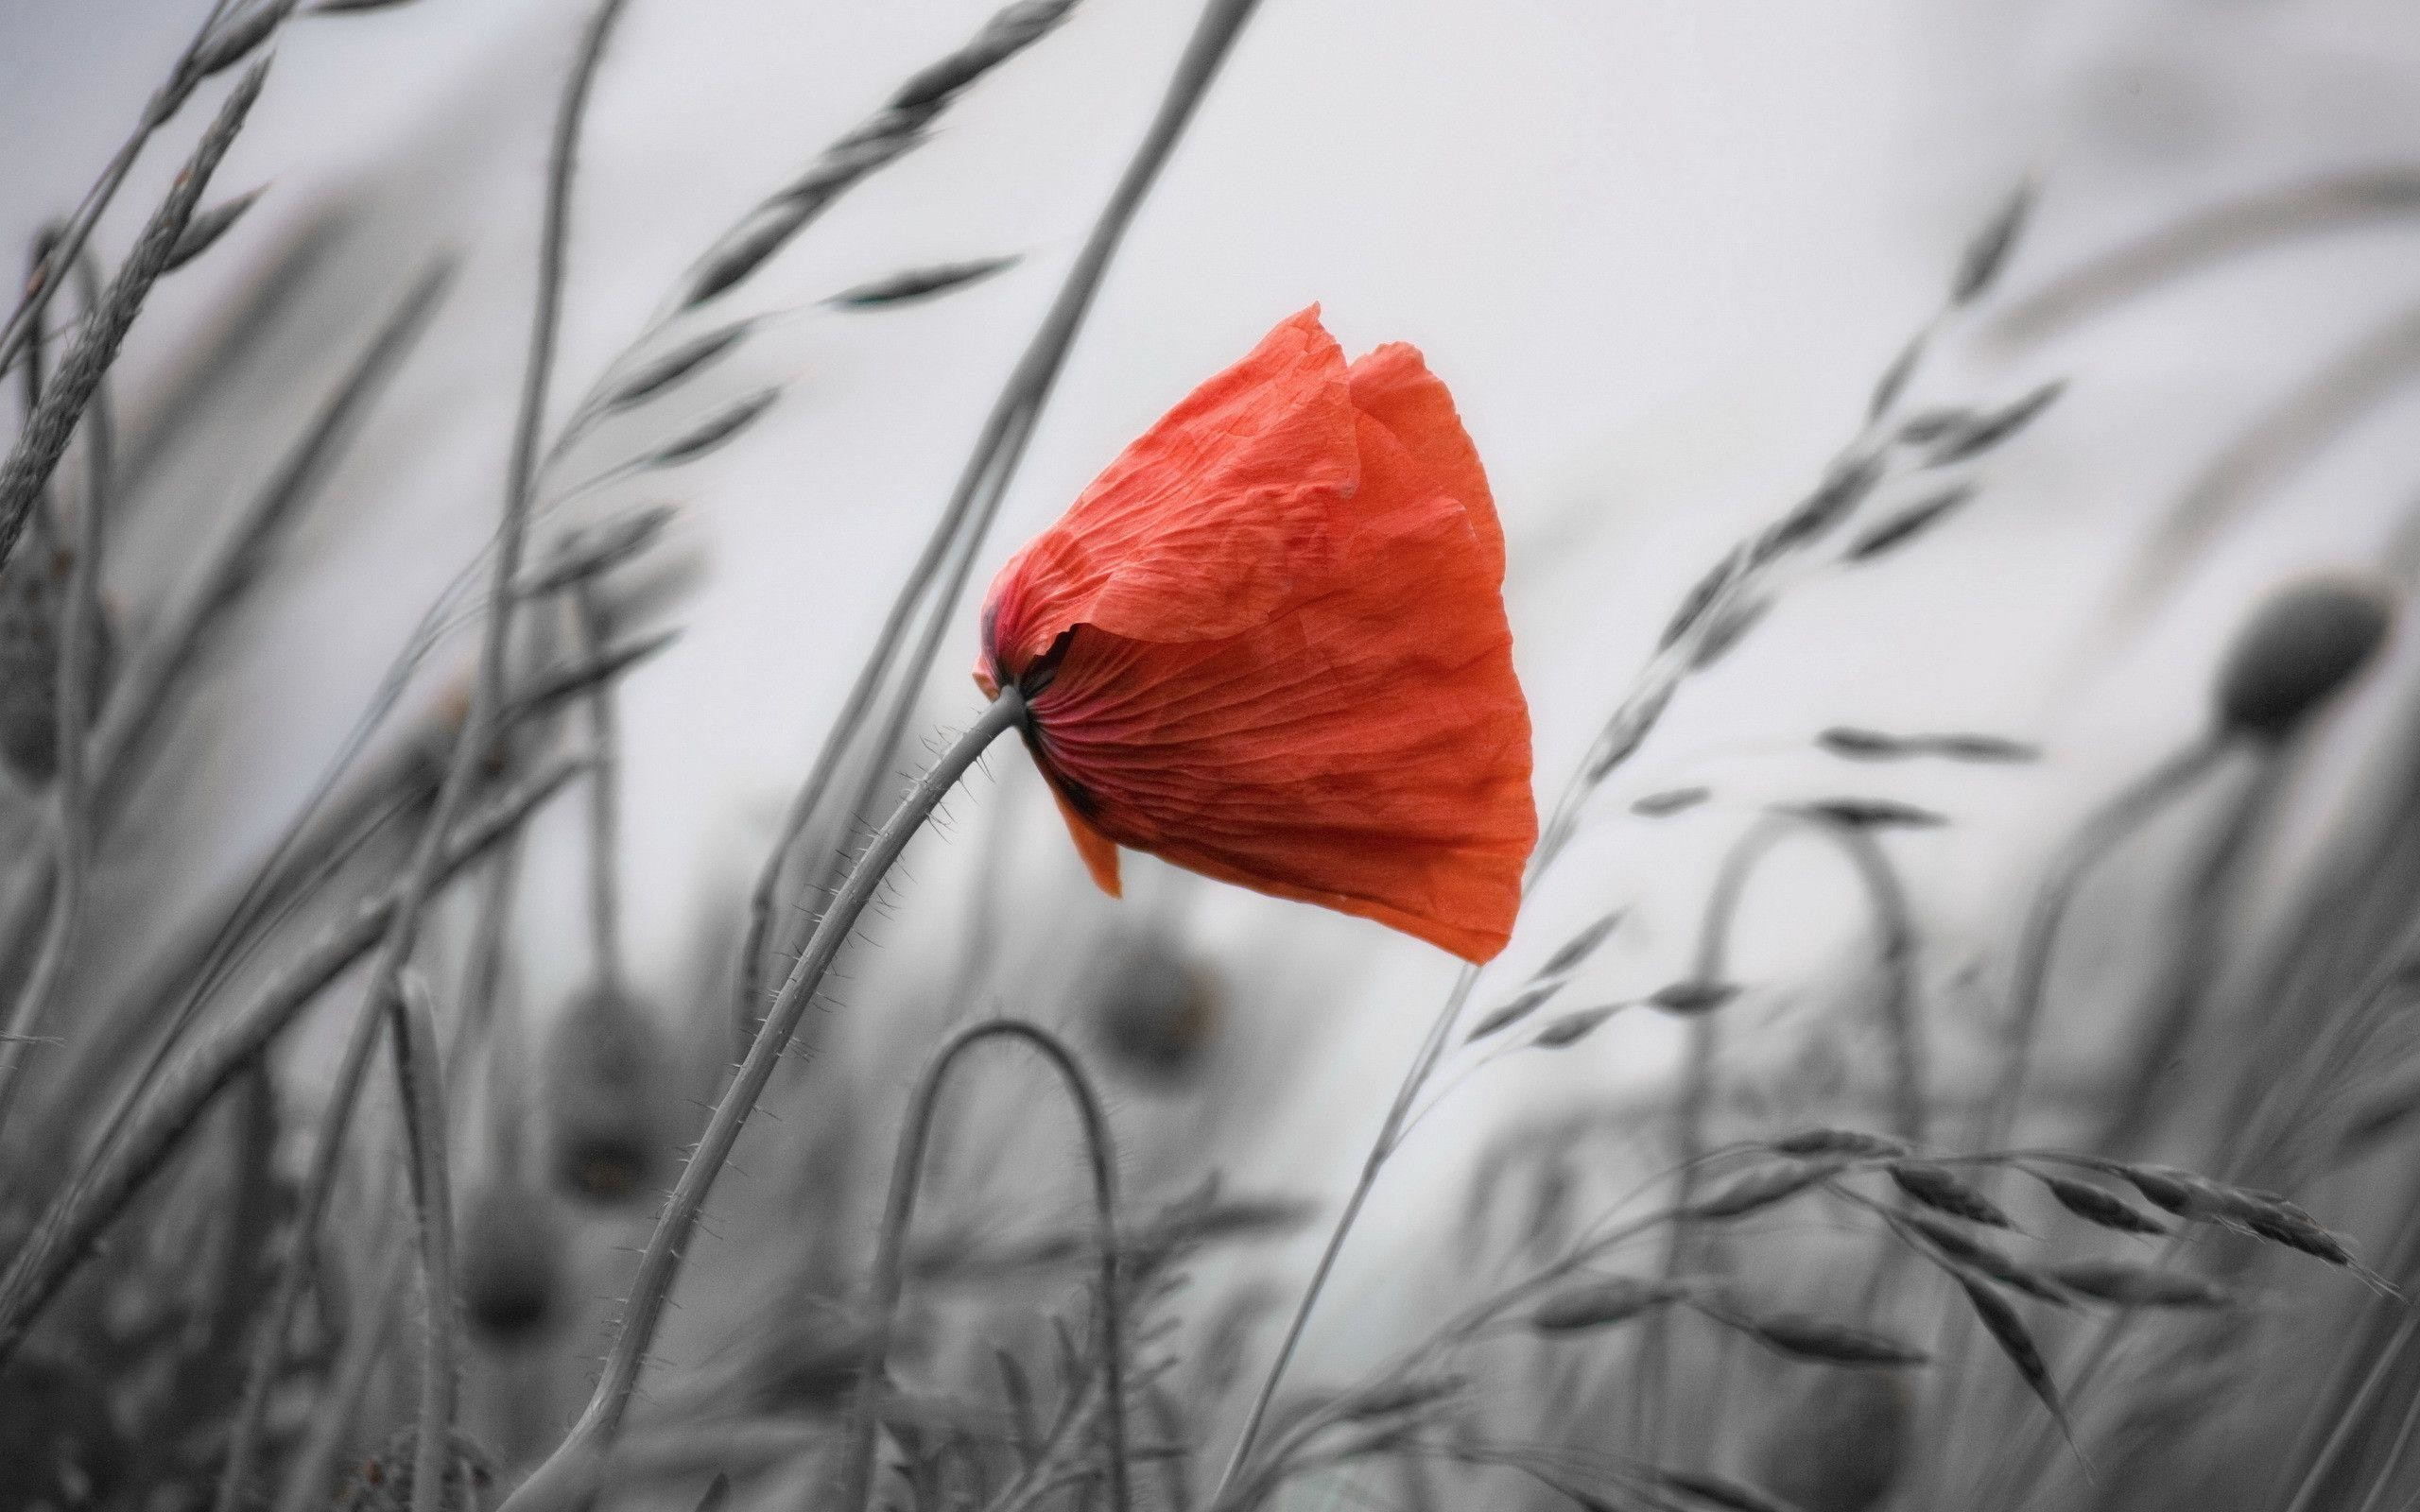 2560x1600 Poppy background Wallpapers | Pictures